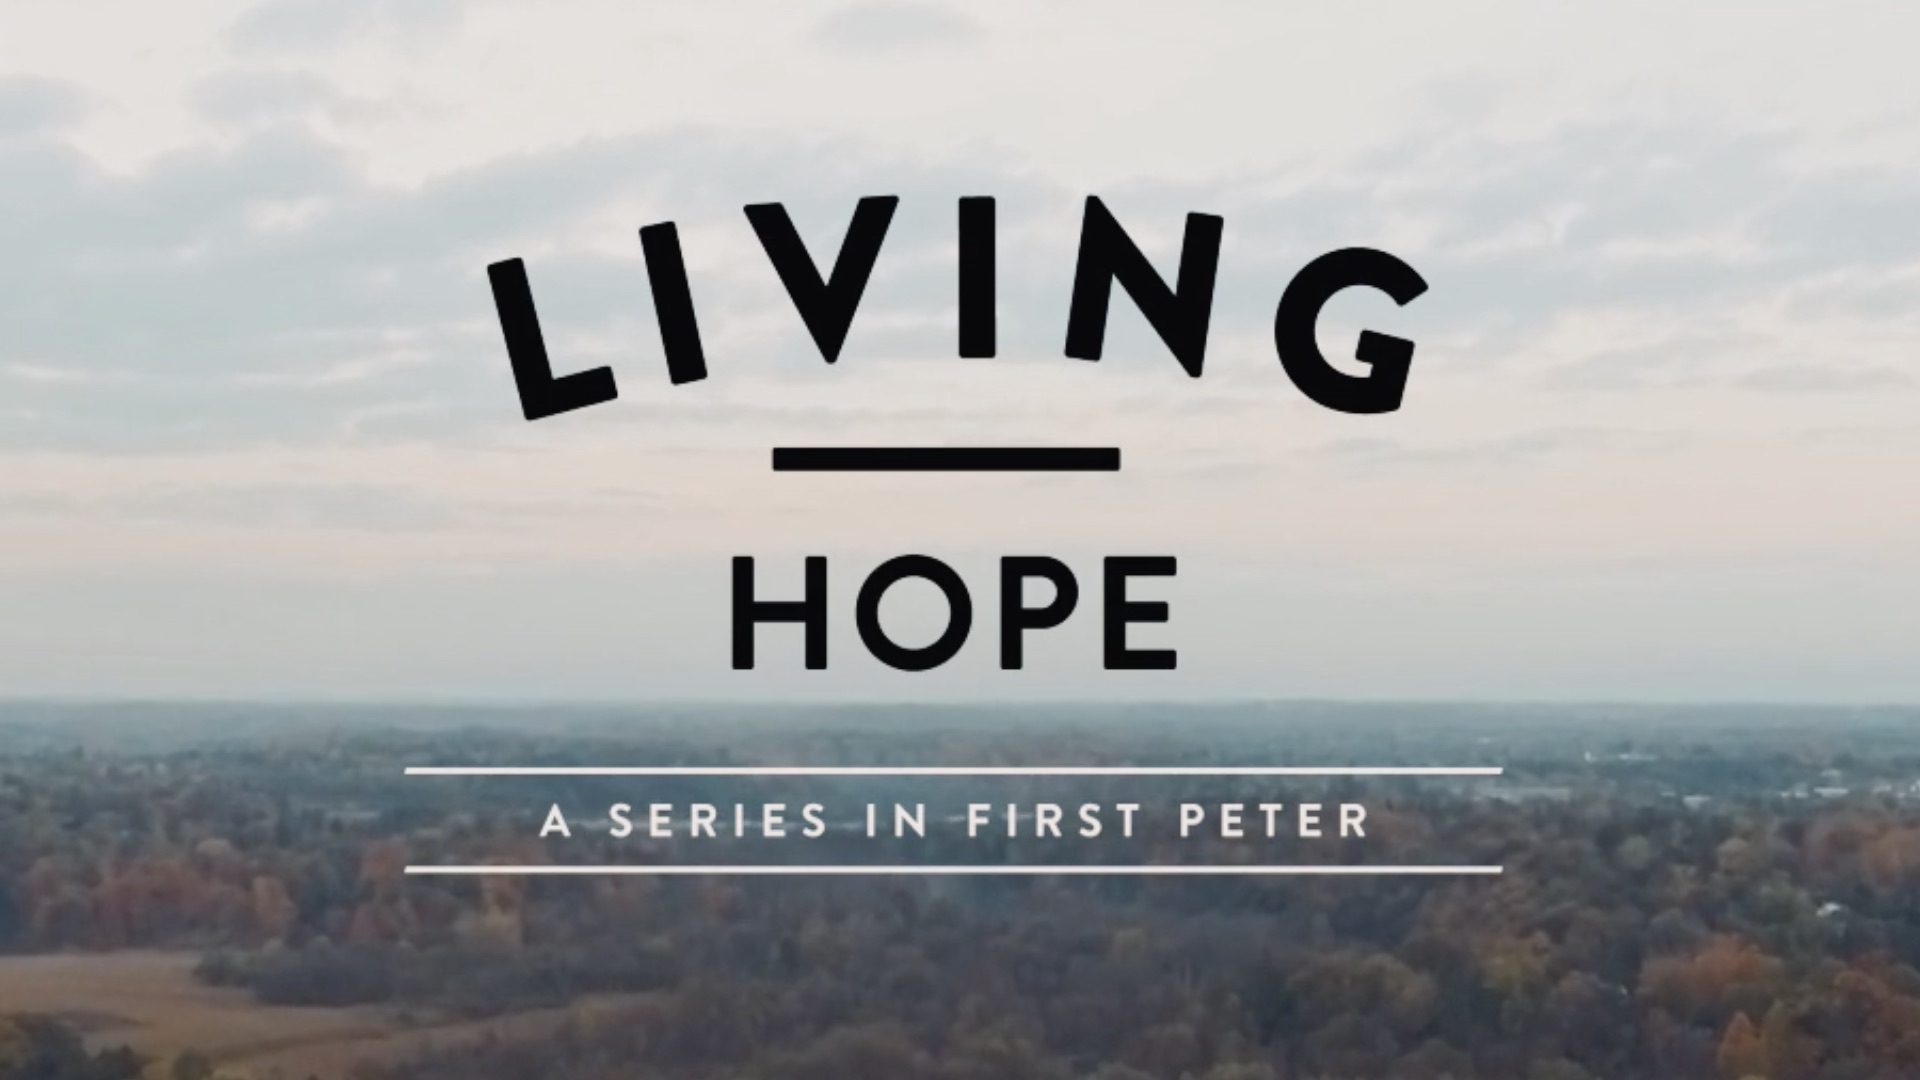 Living Hope 1 Peter 3:13-17